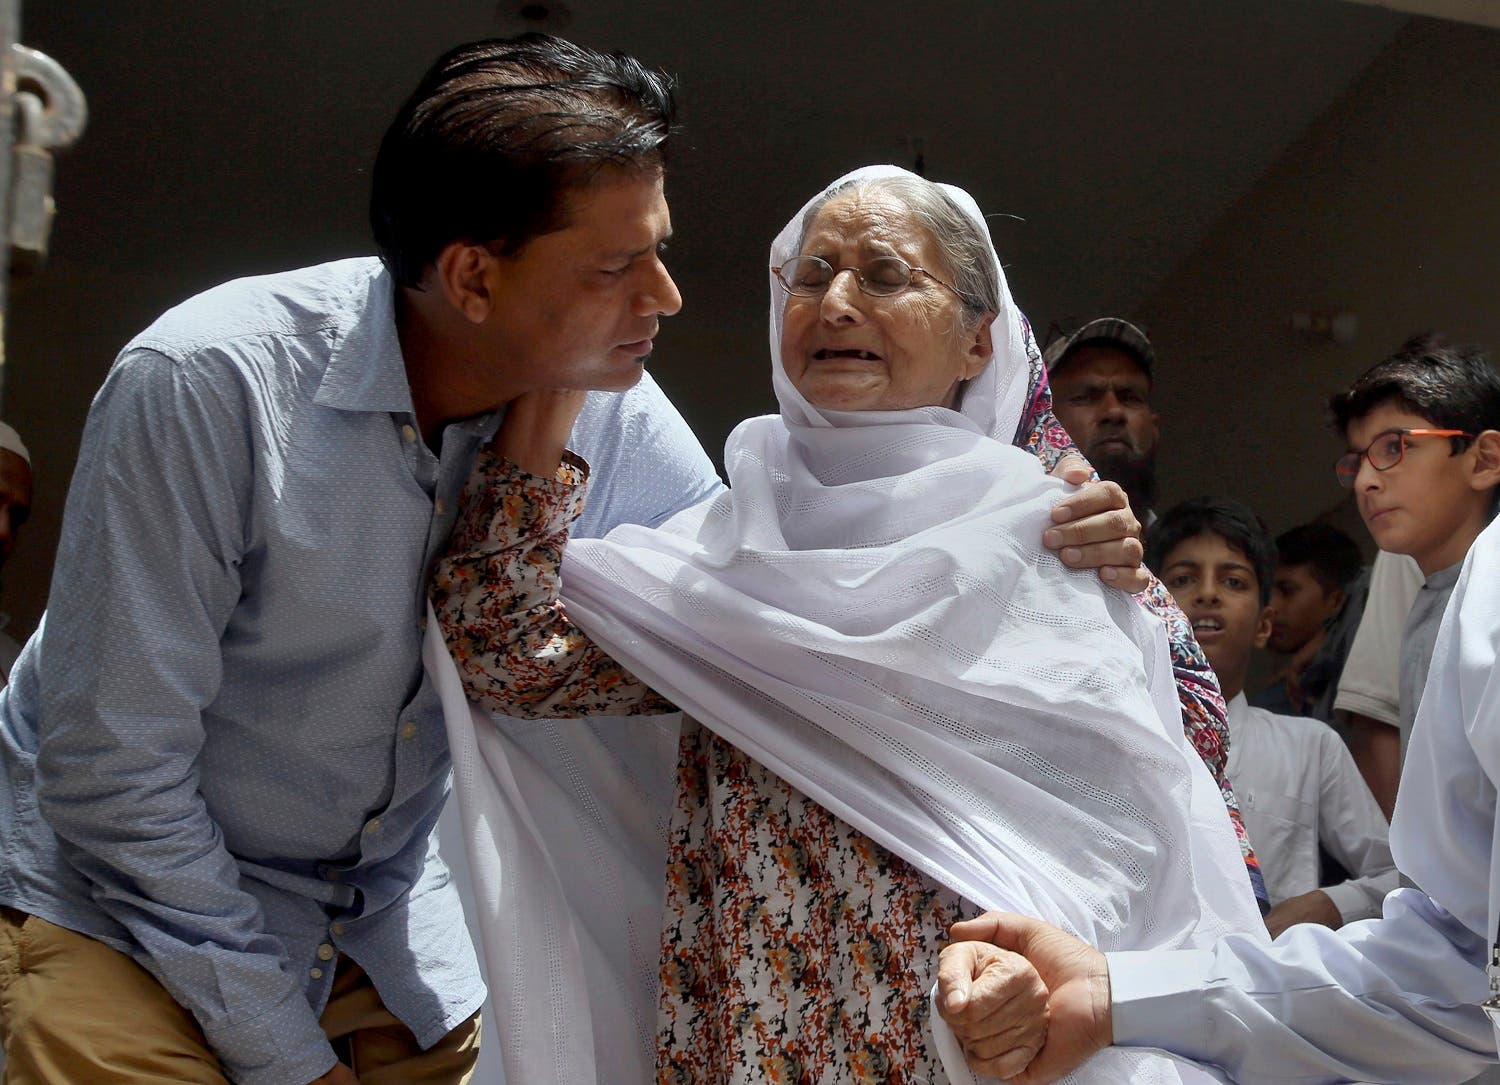 Abdul Aziz Sheikh, left, father of Sabika Sheikh, a victim of a shooting at a Texas high school, comforts to an elderly woman arriving for condolence at his home in Karachi. (AP)